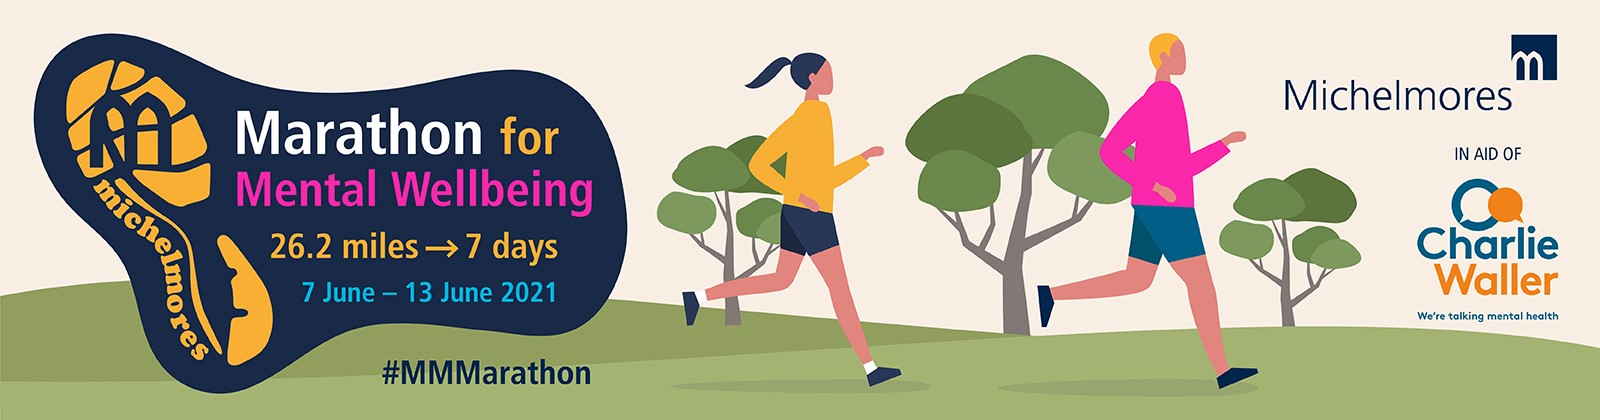 The Michelmores Marathon for Mental Wellbeing 2021